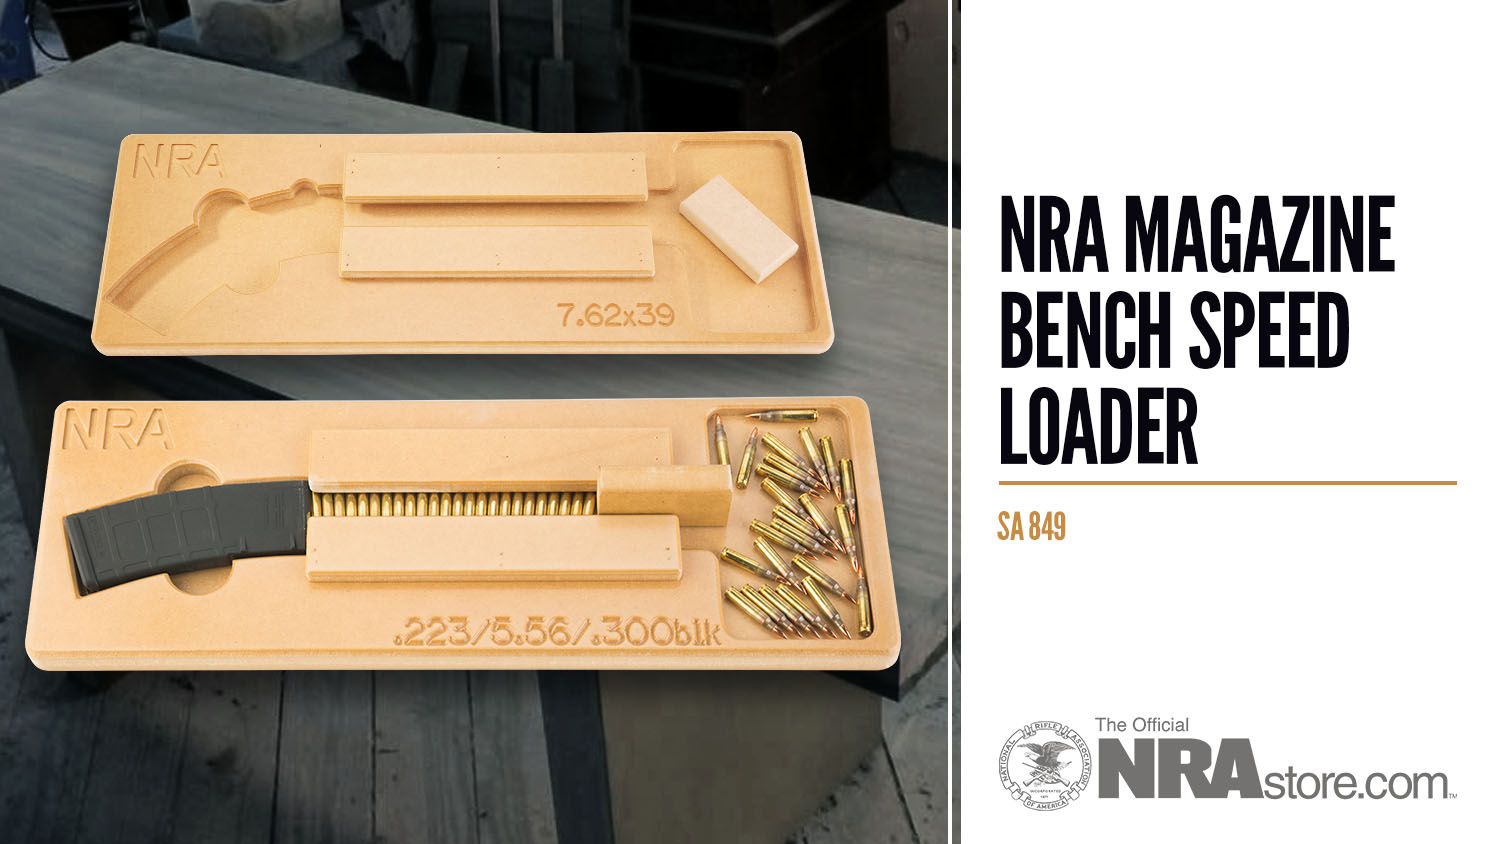 NRAstore Product Highlight: Magazine Bench Speed Loader